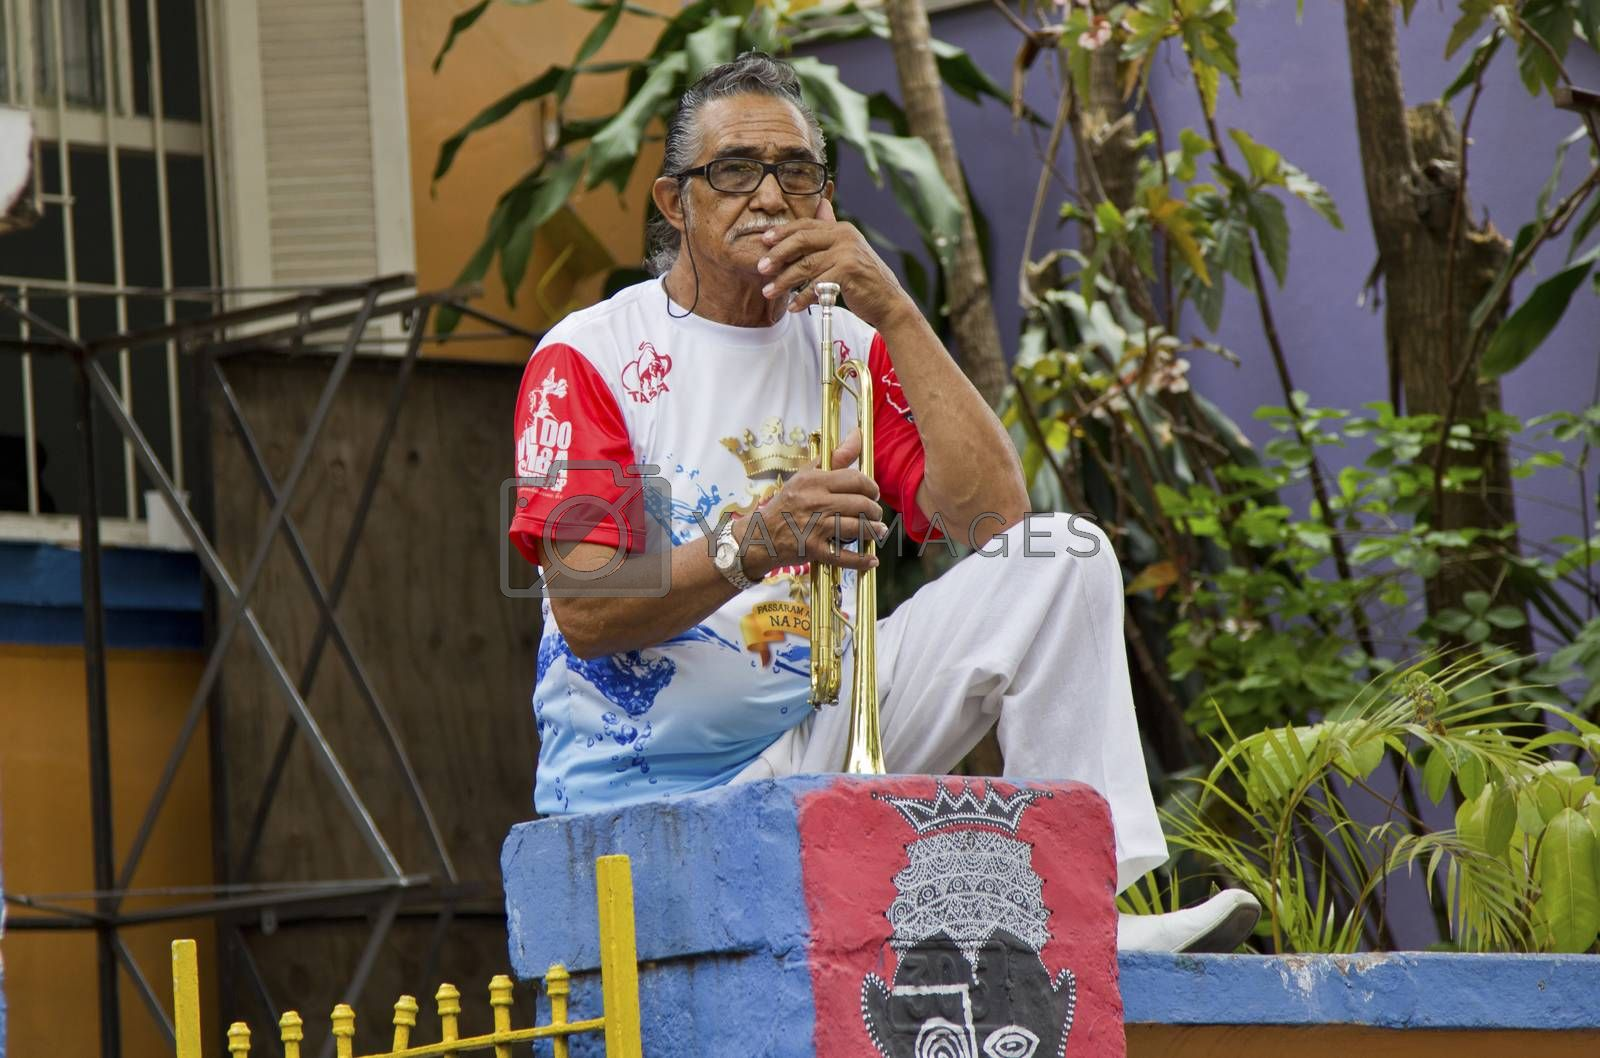 SAO PAULO, BRAZIL - JANUARY 31, 2015: An unidentified man with a trumpet of a traditional samba band participate in the annual Brazilian street carnival.